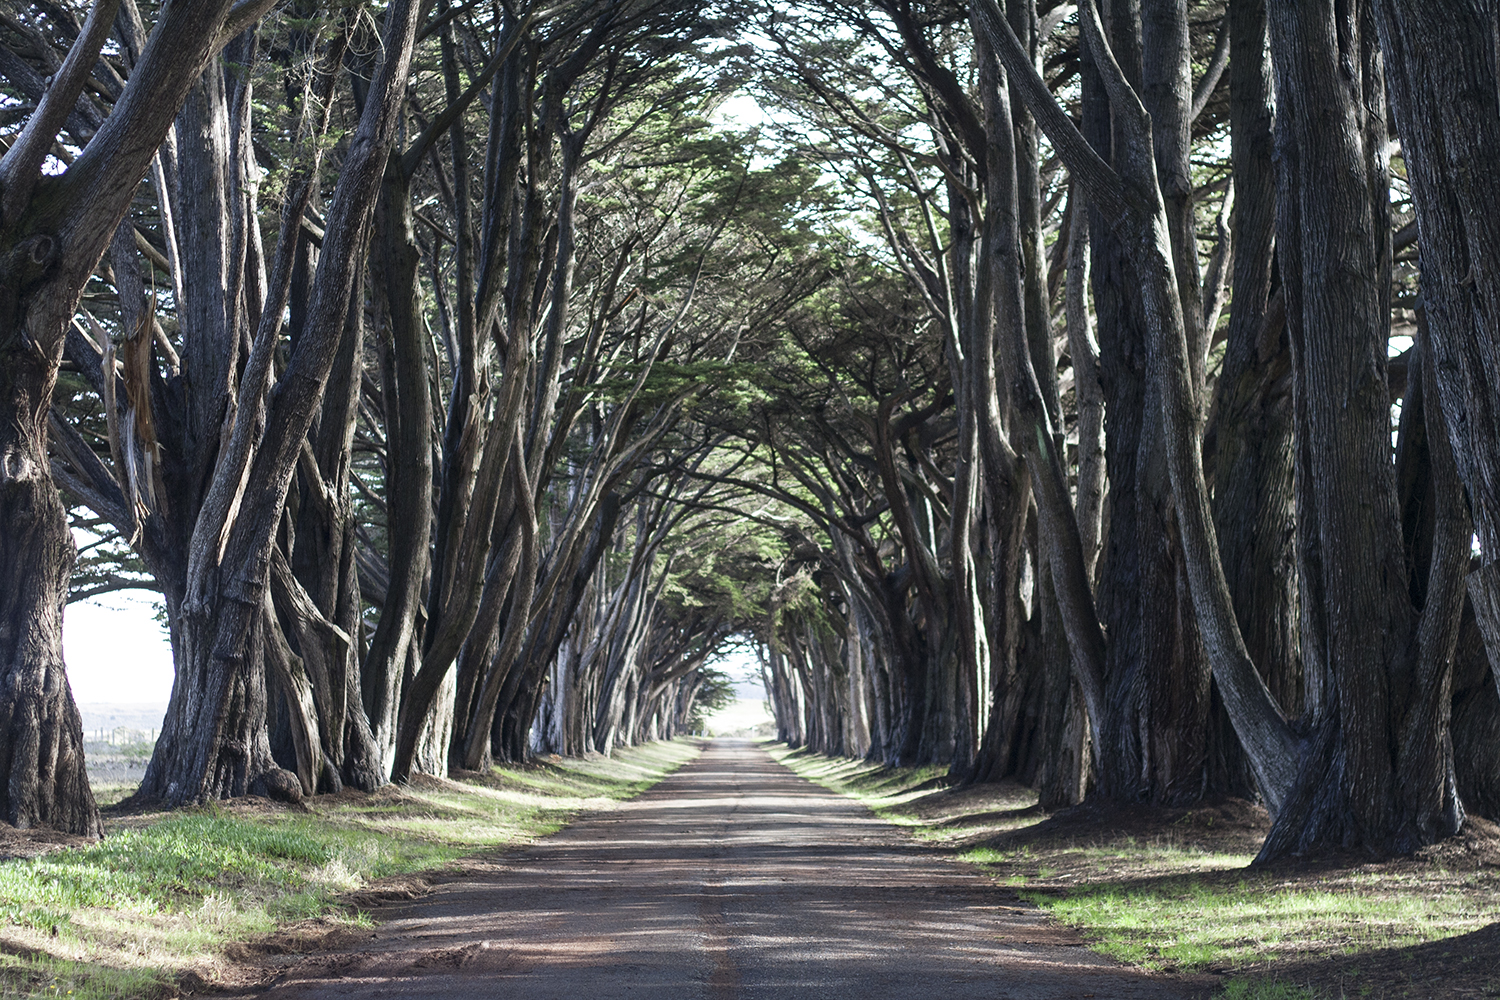 05pointreyes-cypresstreetunnel-trees-travel-style